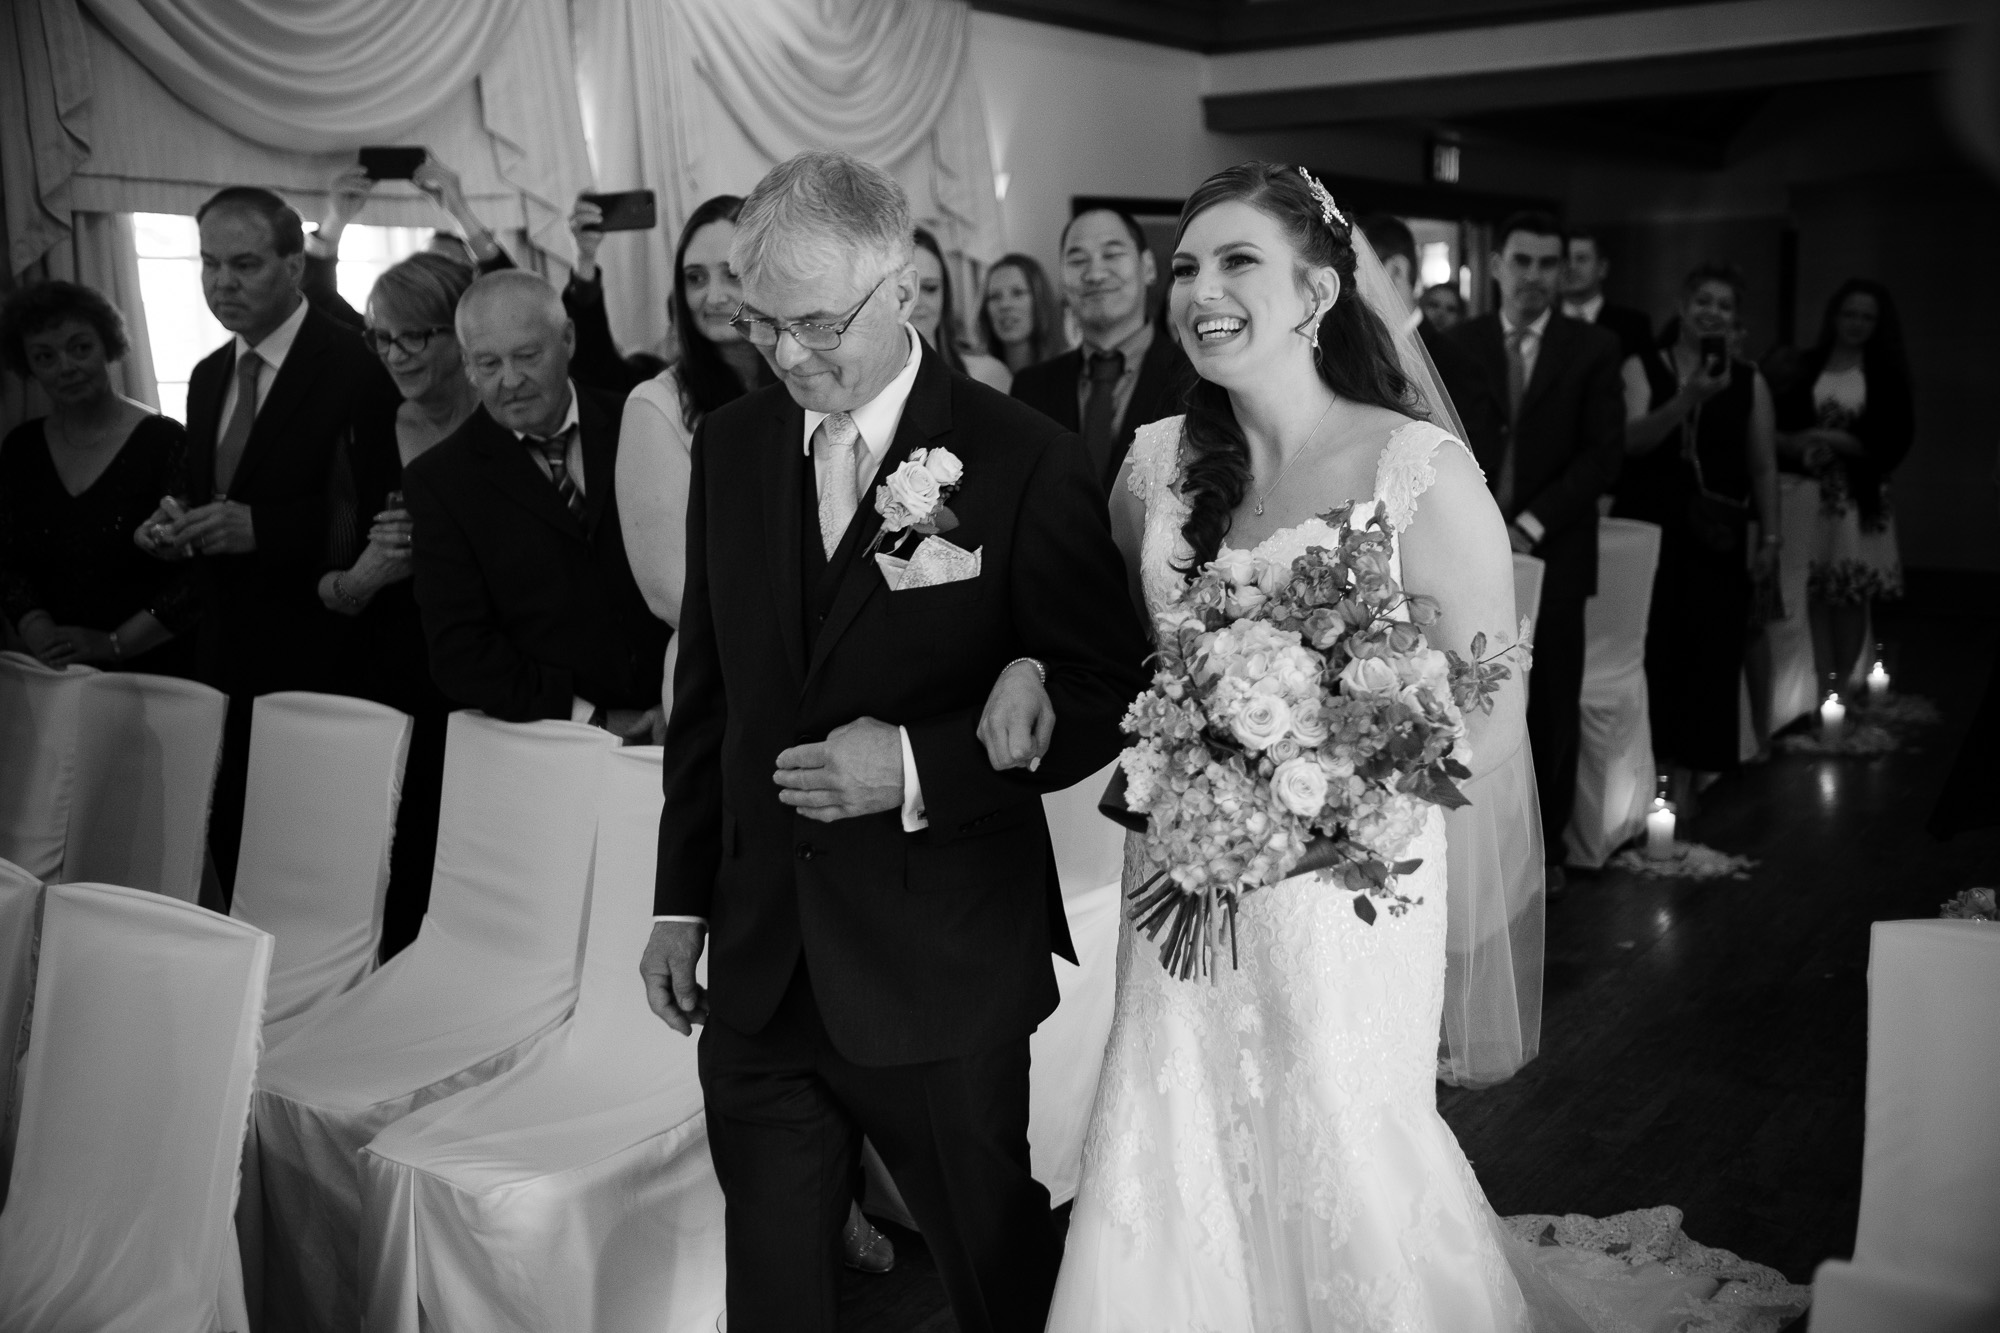 The bride is escorted down the aisle by her father in the this black and white wedding photograph from a wedding ceremony at the Glenerin Inn just outside of Toronto.